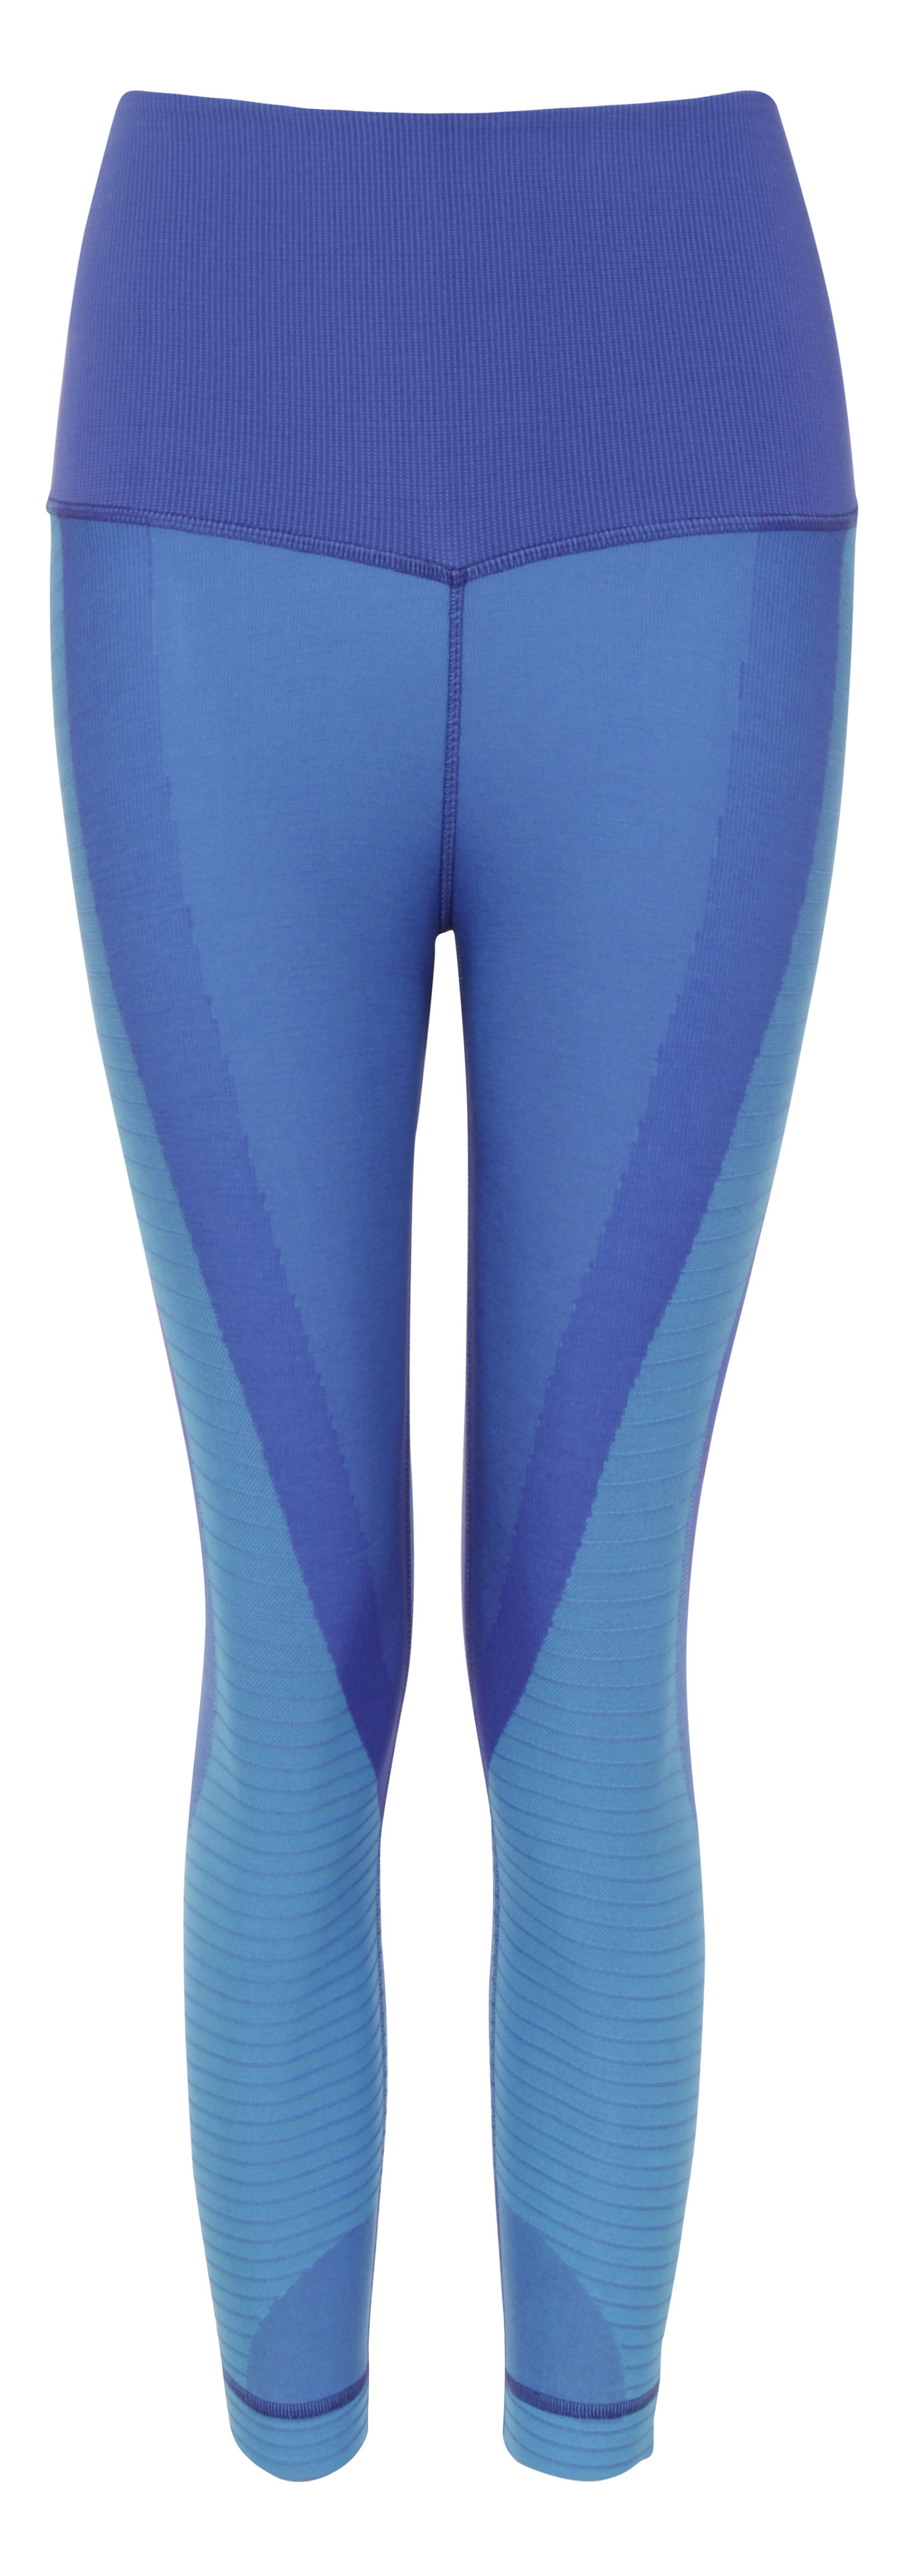 New-Nike-Zoned-Sculpt-Womens-Training-Capris-3-4-Tights-ALL-SIZES